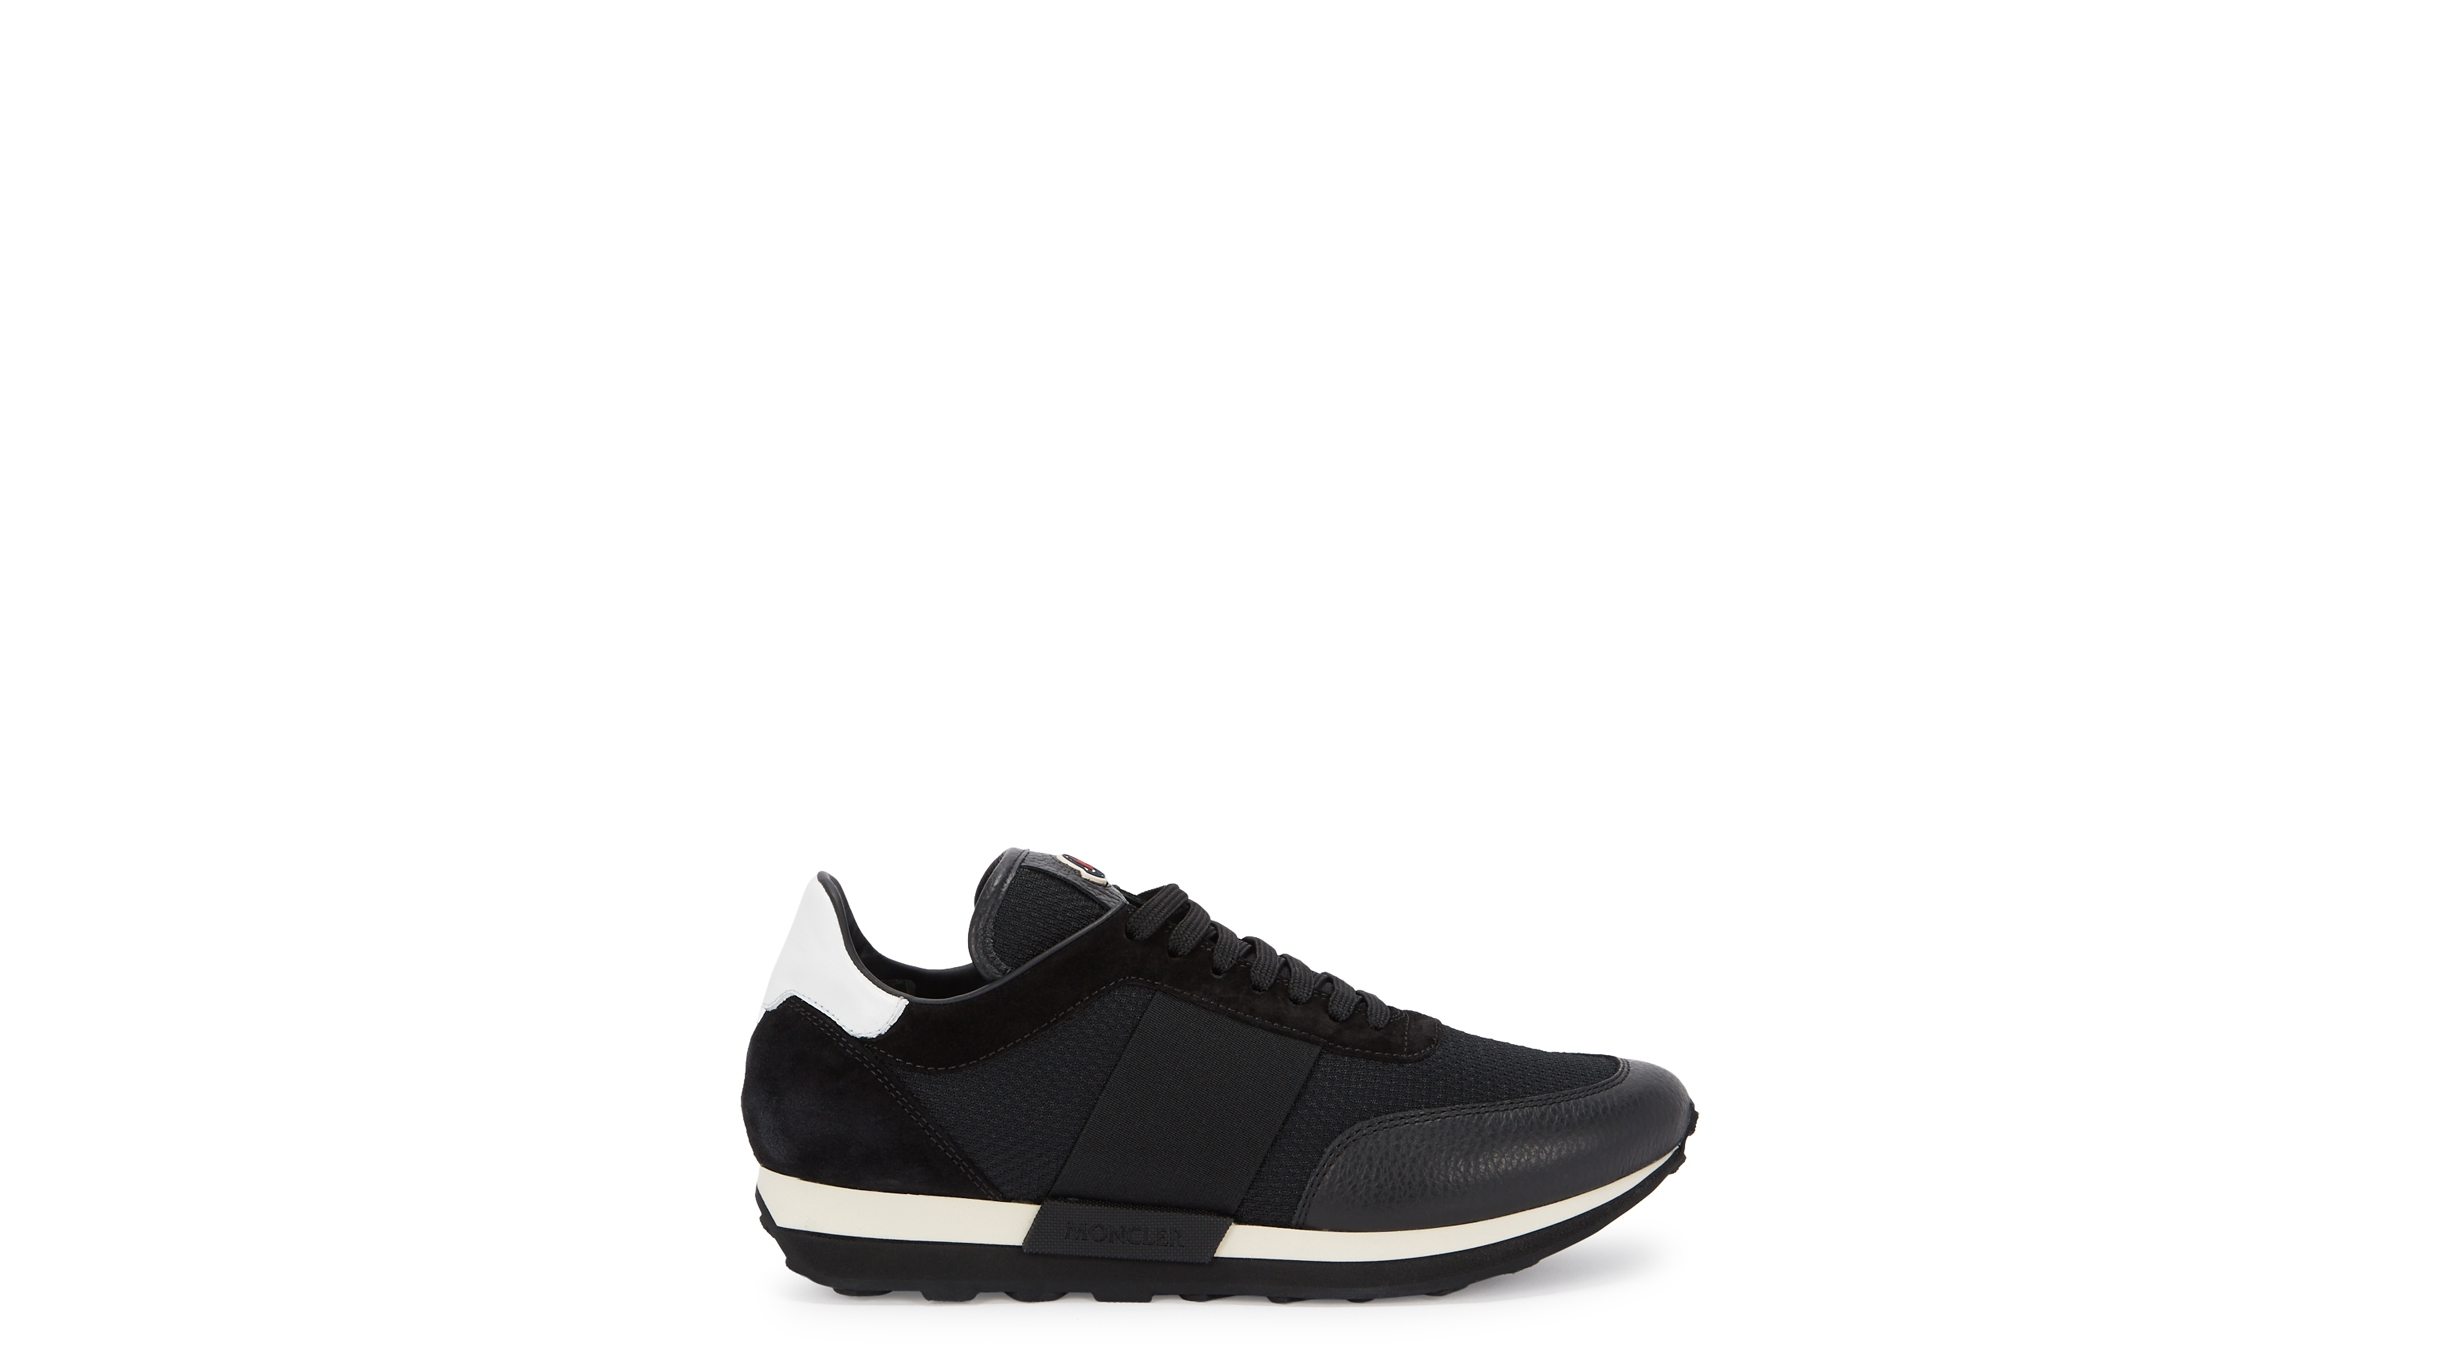 76a8c6aed Louise panelled mesh sneakers